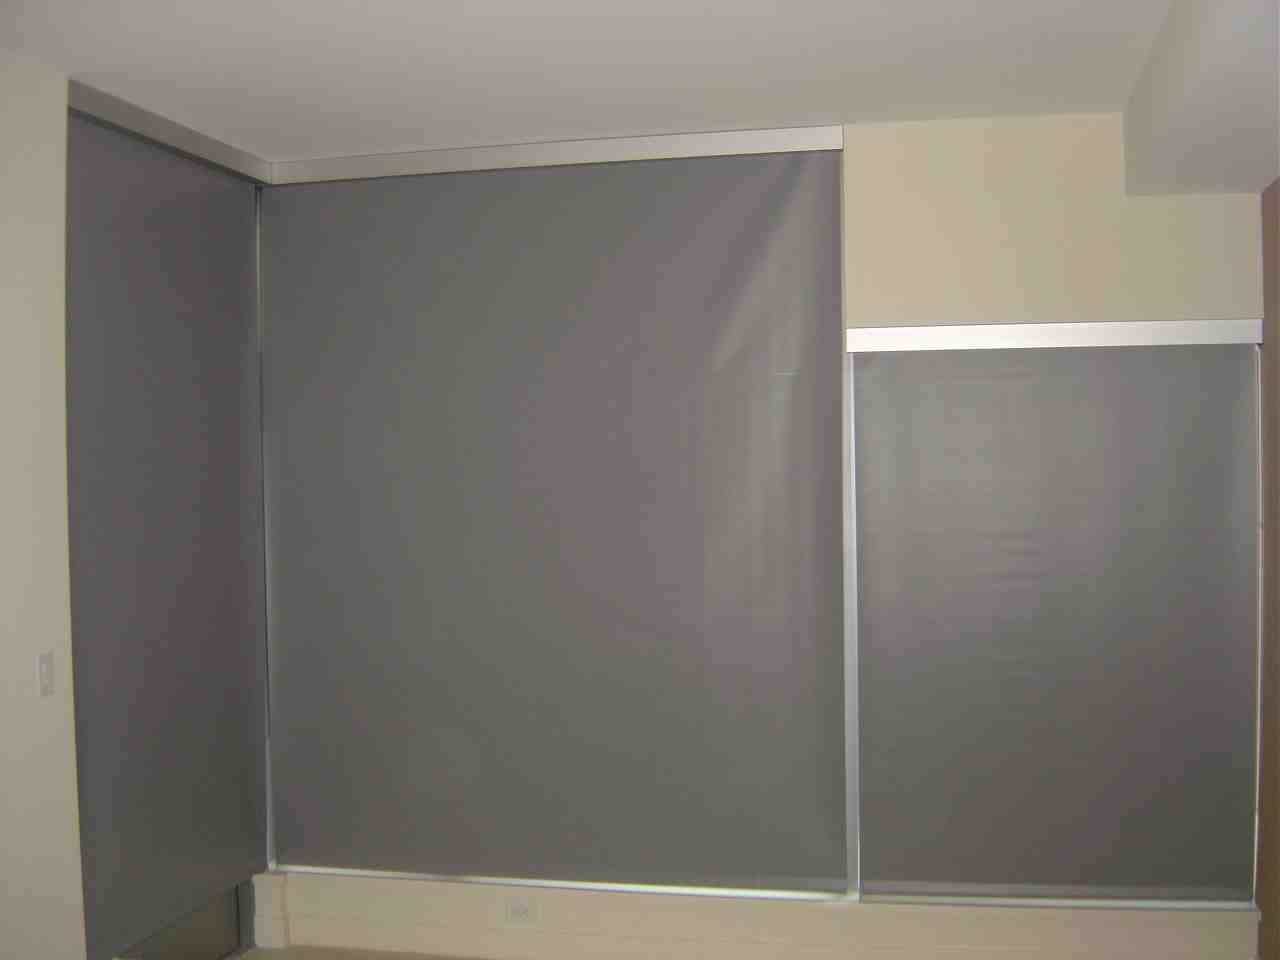 Temporary Blackout Blinds Decor Ideasdecor Ideas